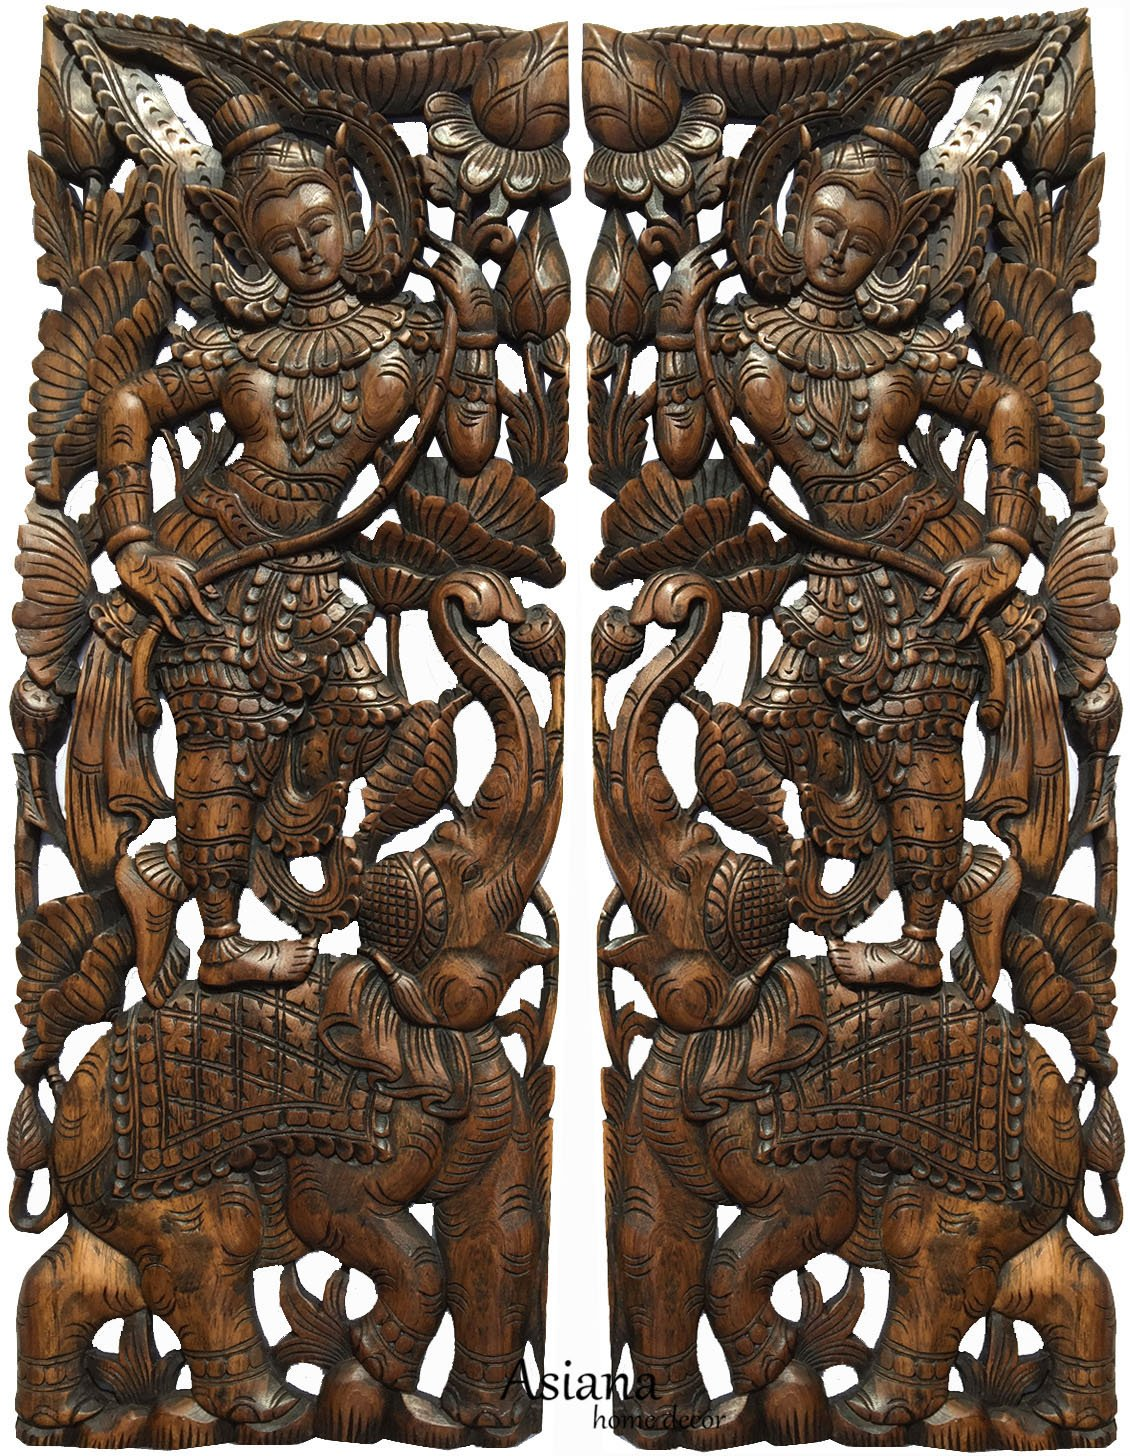 """Sawaddee Thai Traditional Figure with Elephant Carved Wood Wall Decor Panel in Dark Brown Finish 35.5""""x13.5""""x1'' Each, Set of 2 Pcs by Asiana Home Decor"""